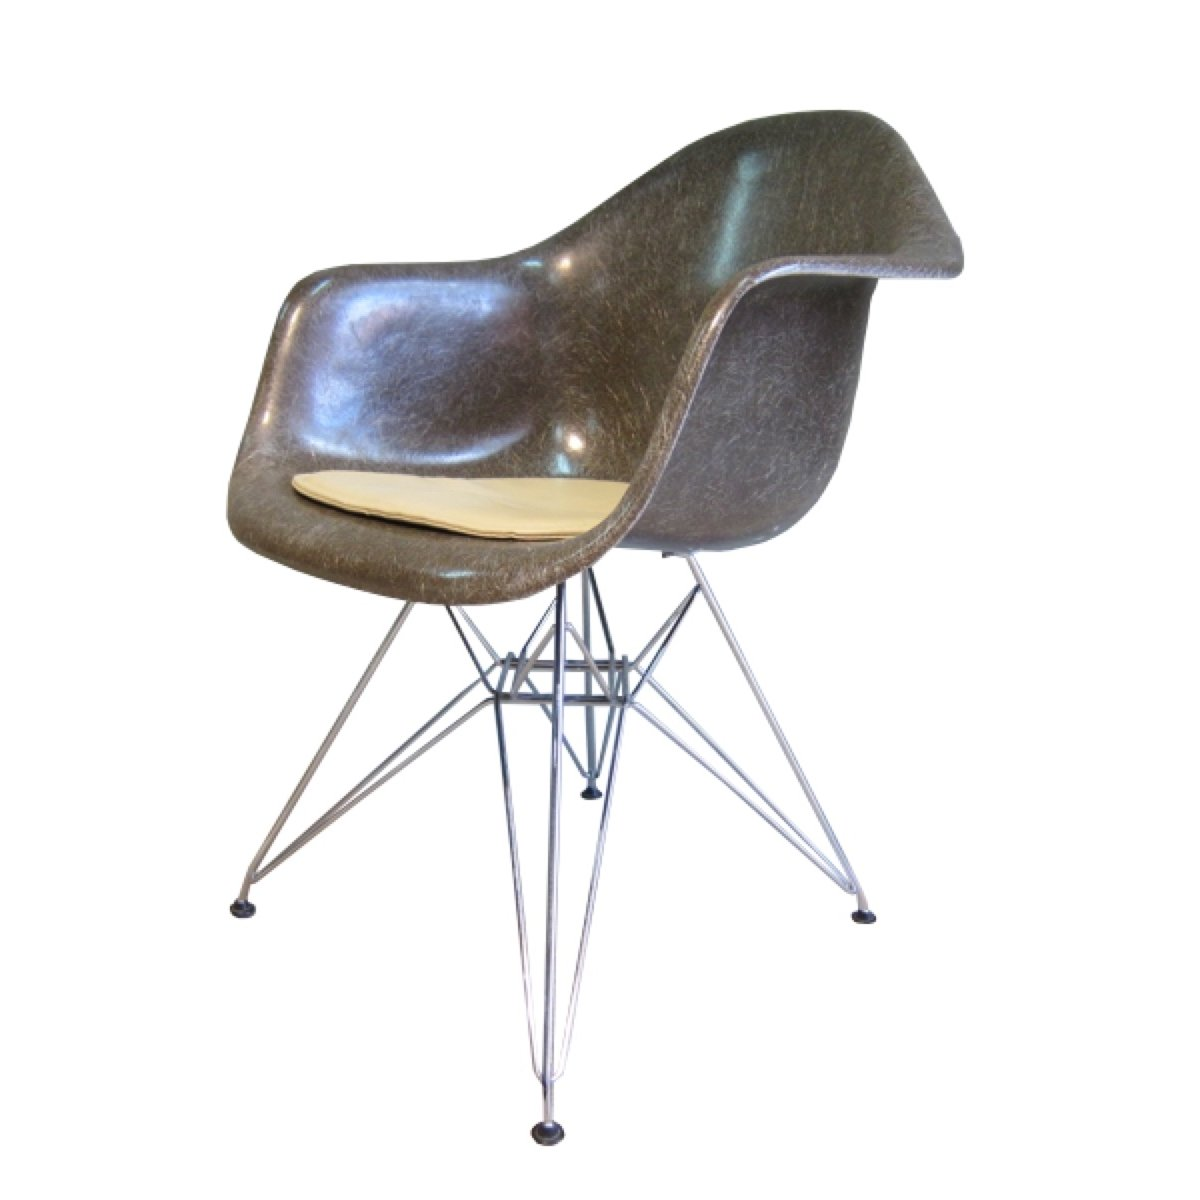 Vintage Eames Fiberglass Armchair With Wire Base Amp Seating